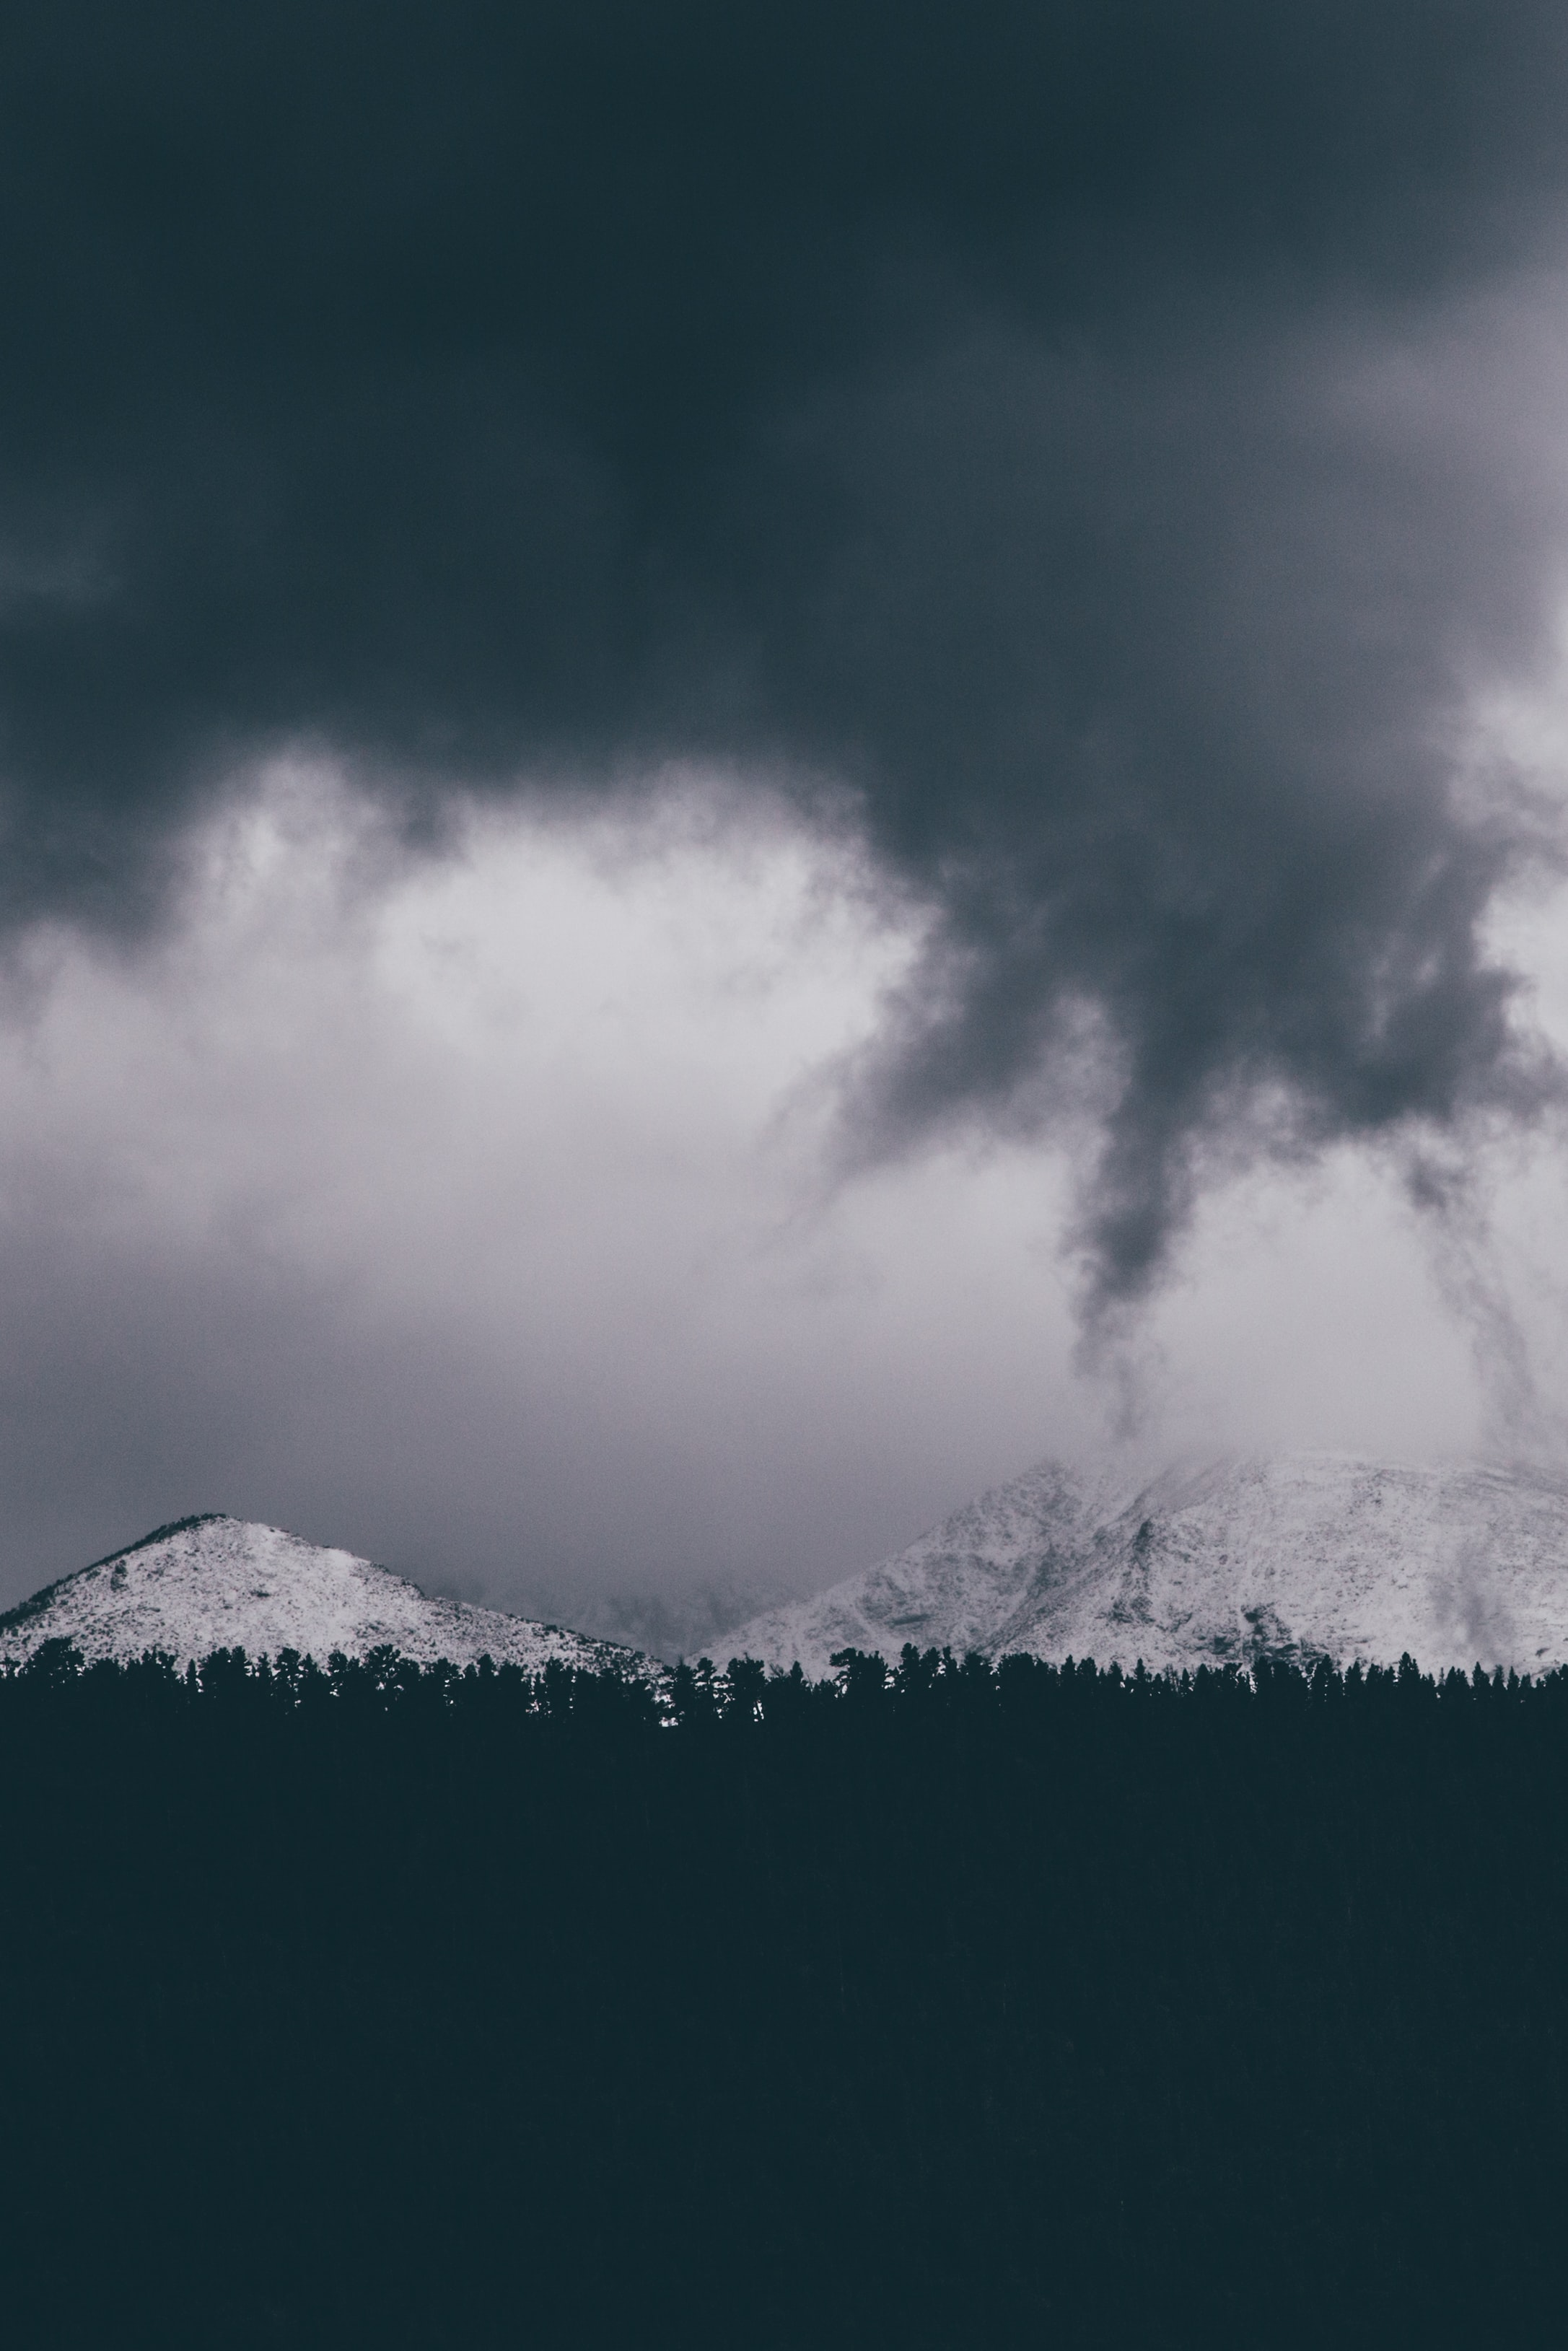 silhouette of trees near snow capped mountains